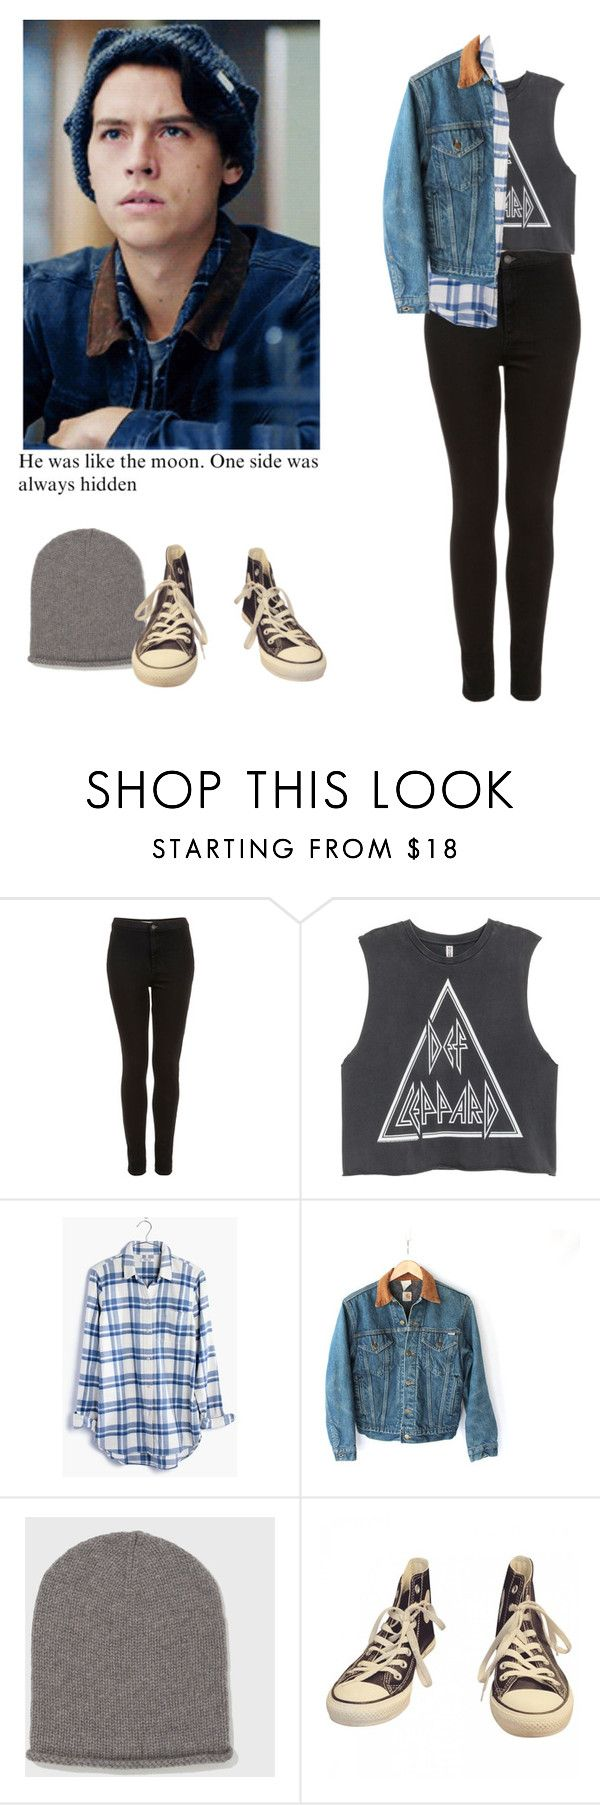 Image Result For Riverdale Sets Polyvore Outfits In 2019 Outfits